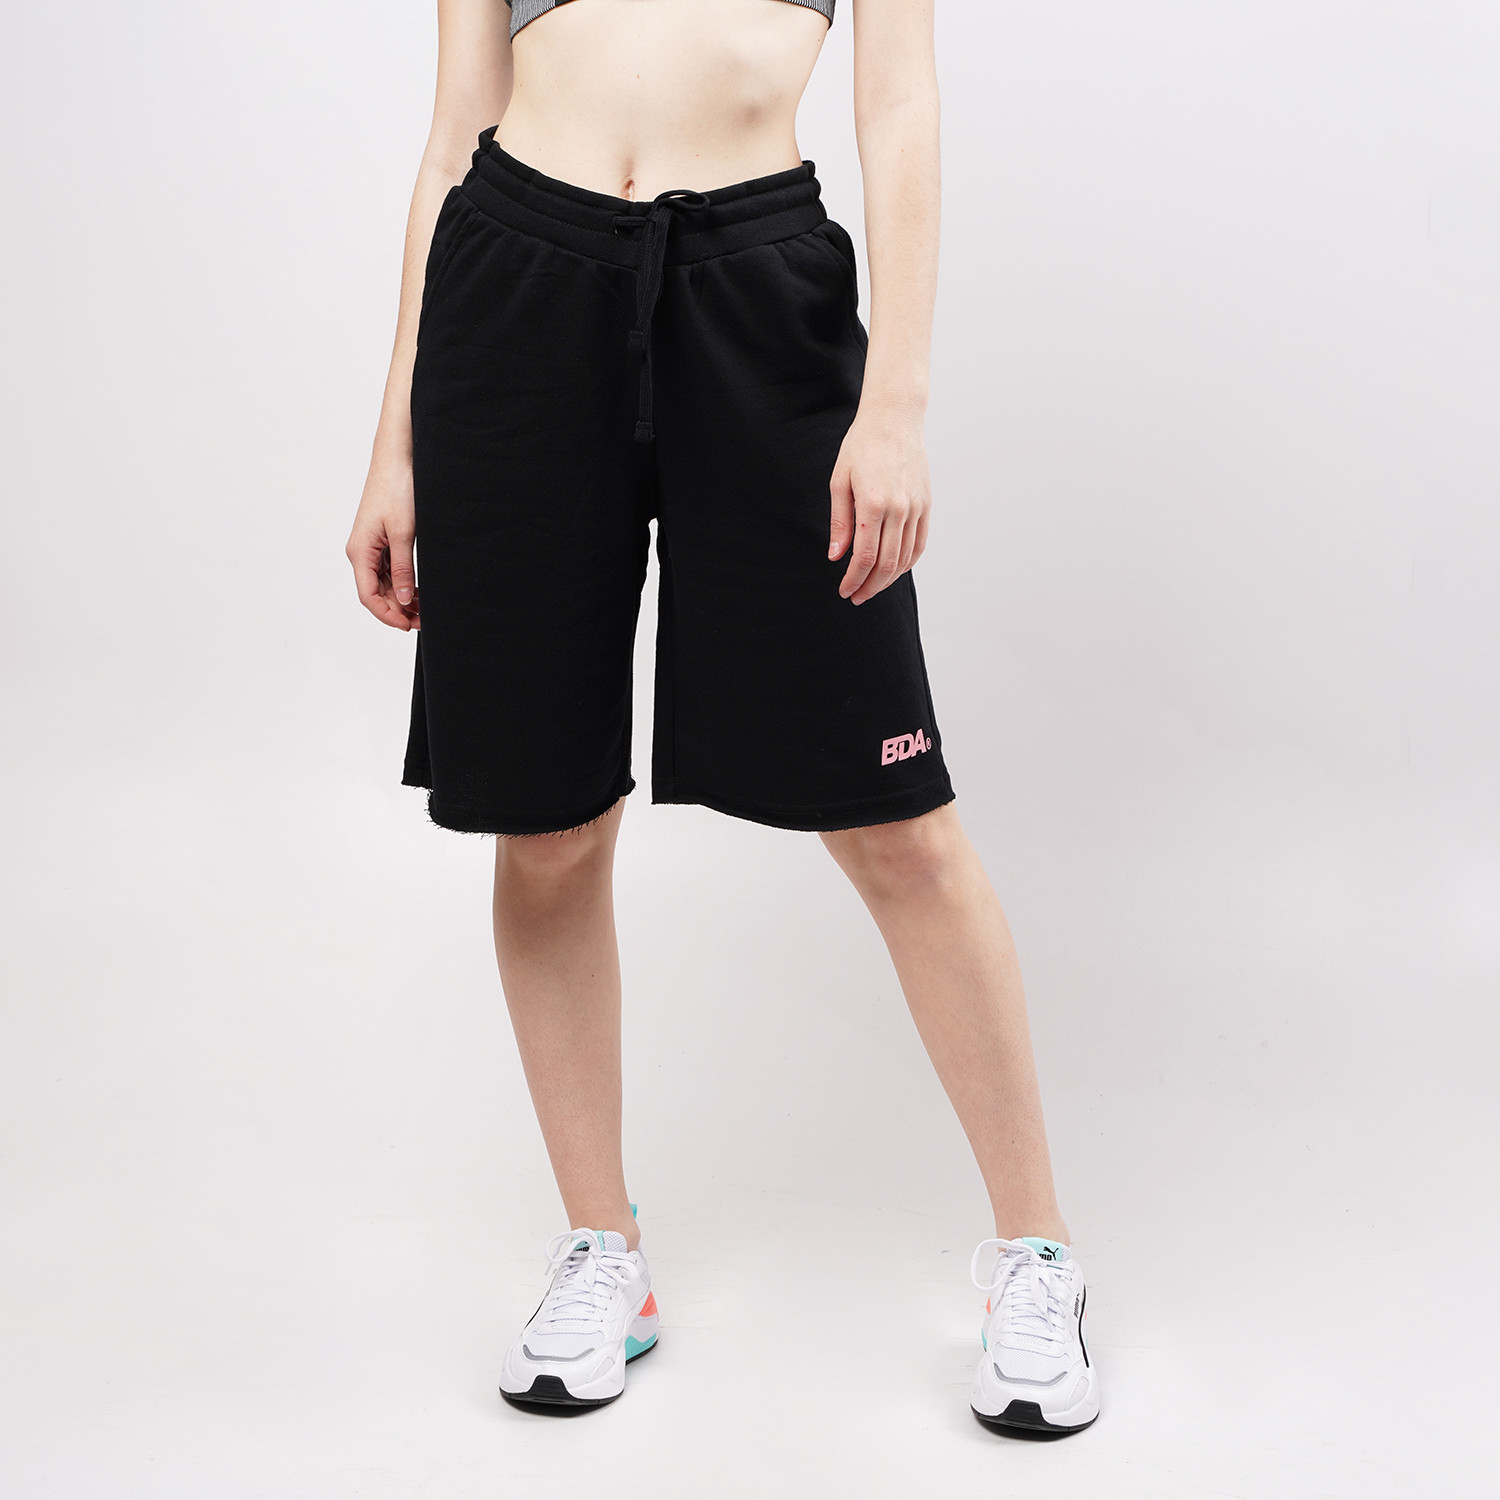 Body Action Women'S Loose Fit Bermuda Shorts (9000076687_1899)